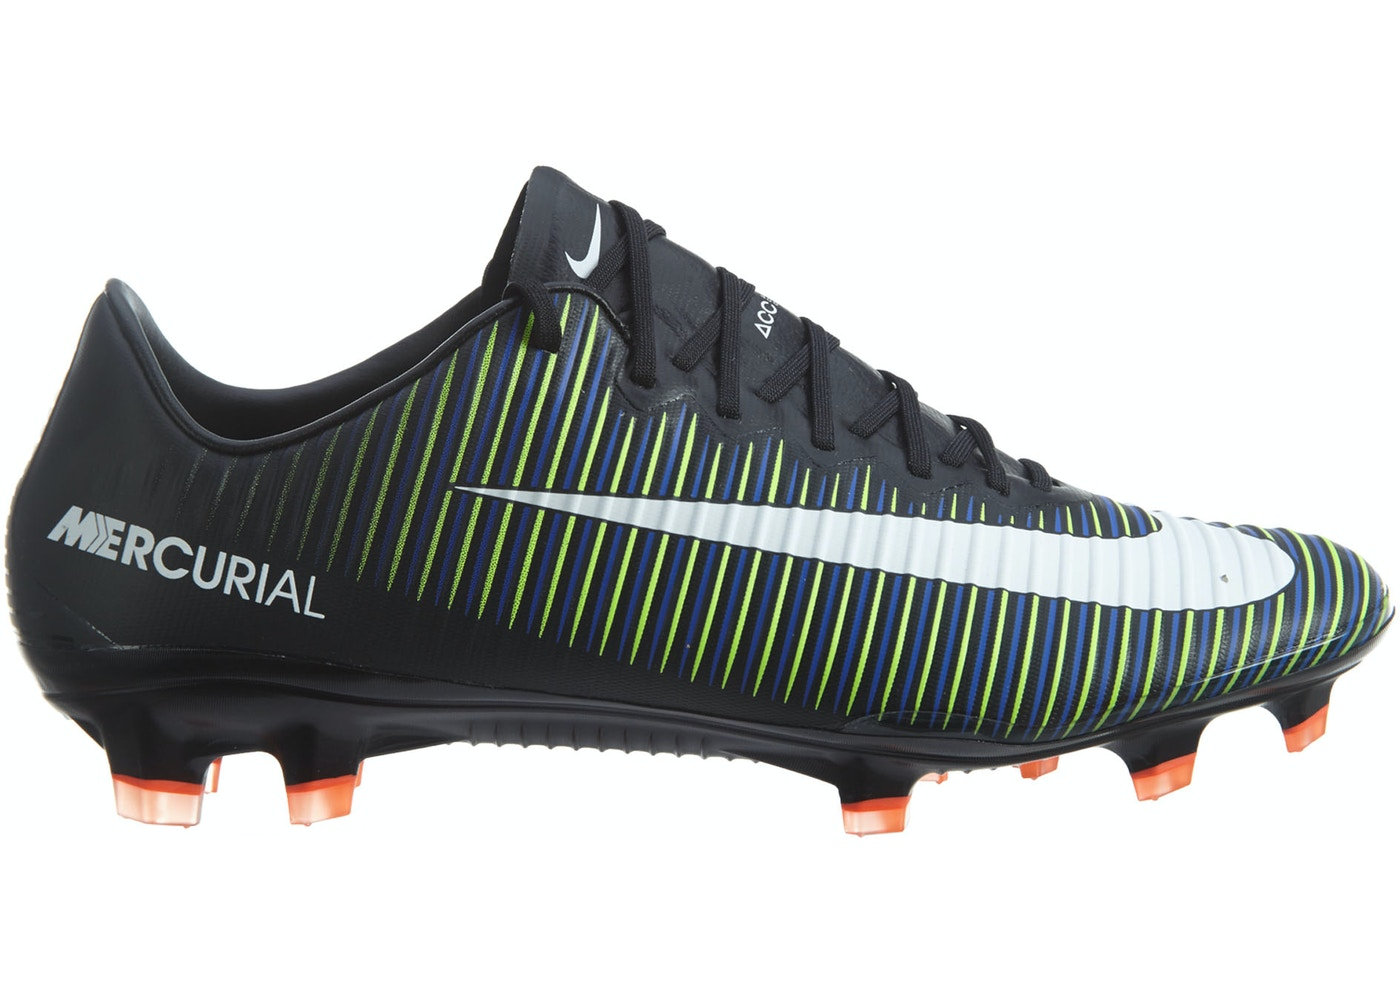 brand new ebd5e d134b Nike Mercurial Vapor Xi Fg Black White-Electric Green ...